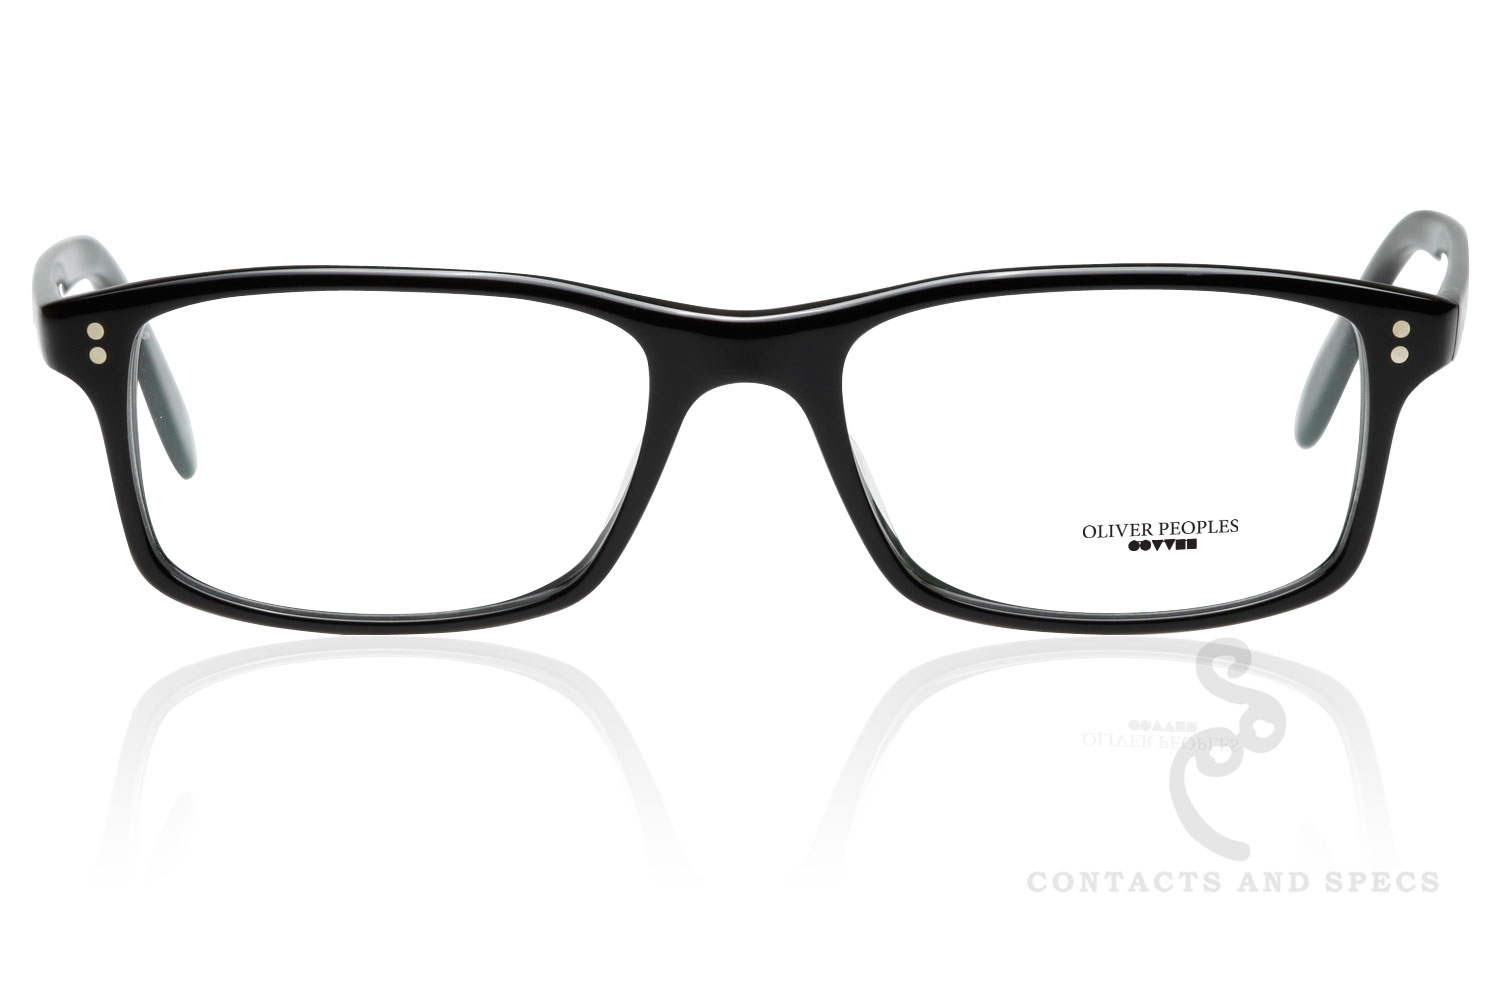 Eyeglass Frames On Your Picture : Picture Of Eyeglasses - ClipArt Best